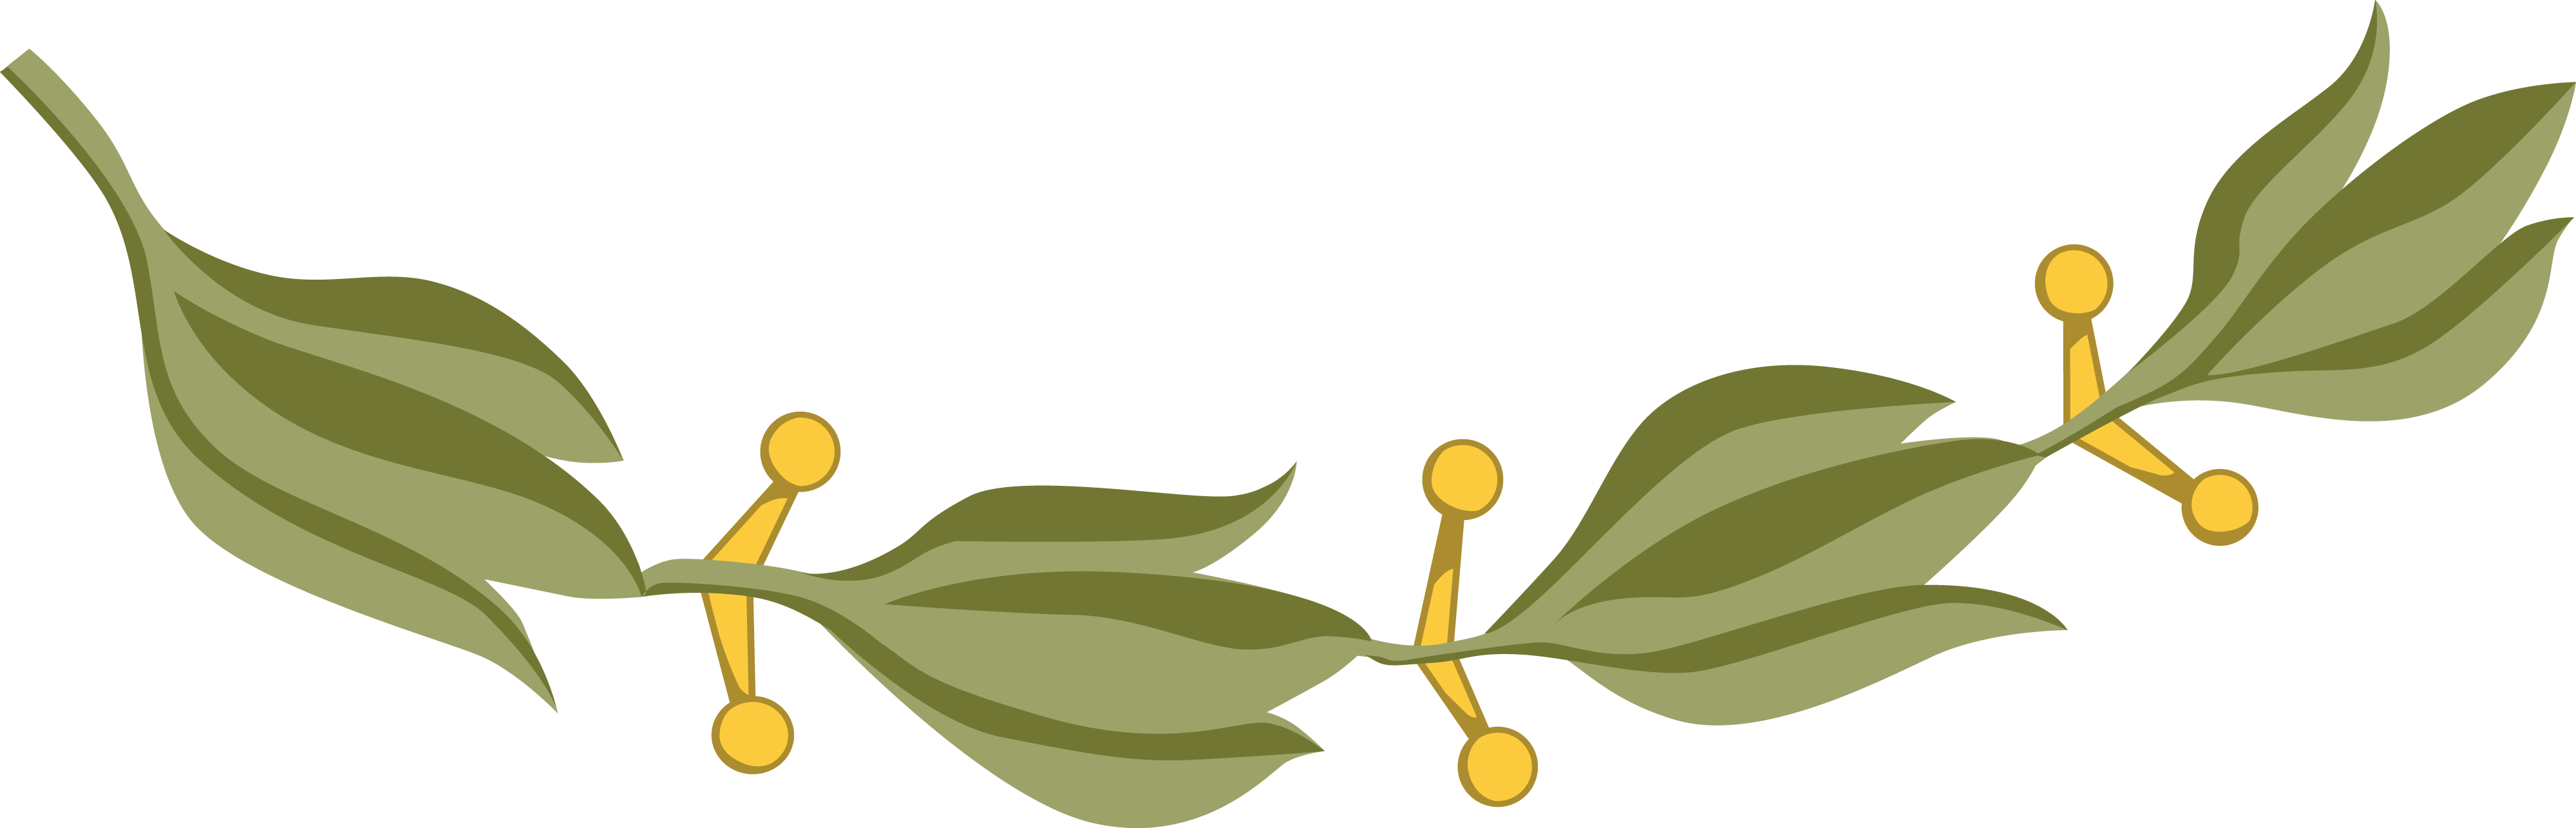 Free Clipart Of A Design Element Of Laurel Leaves